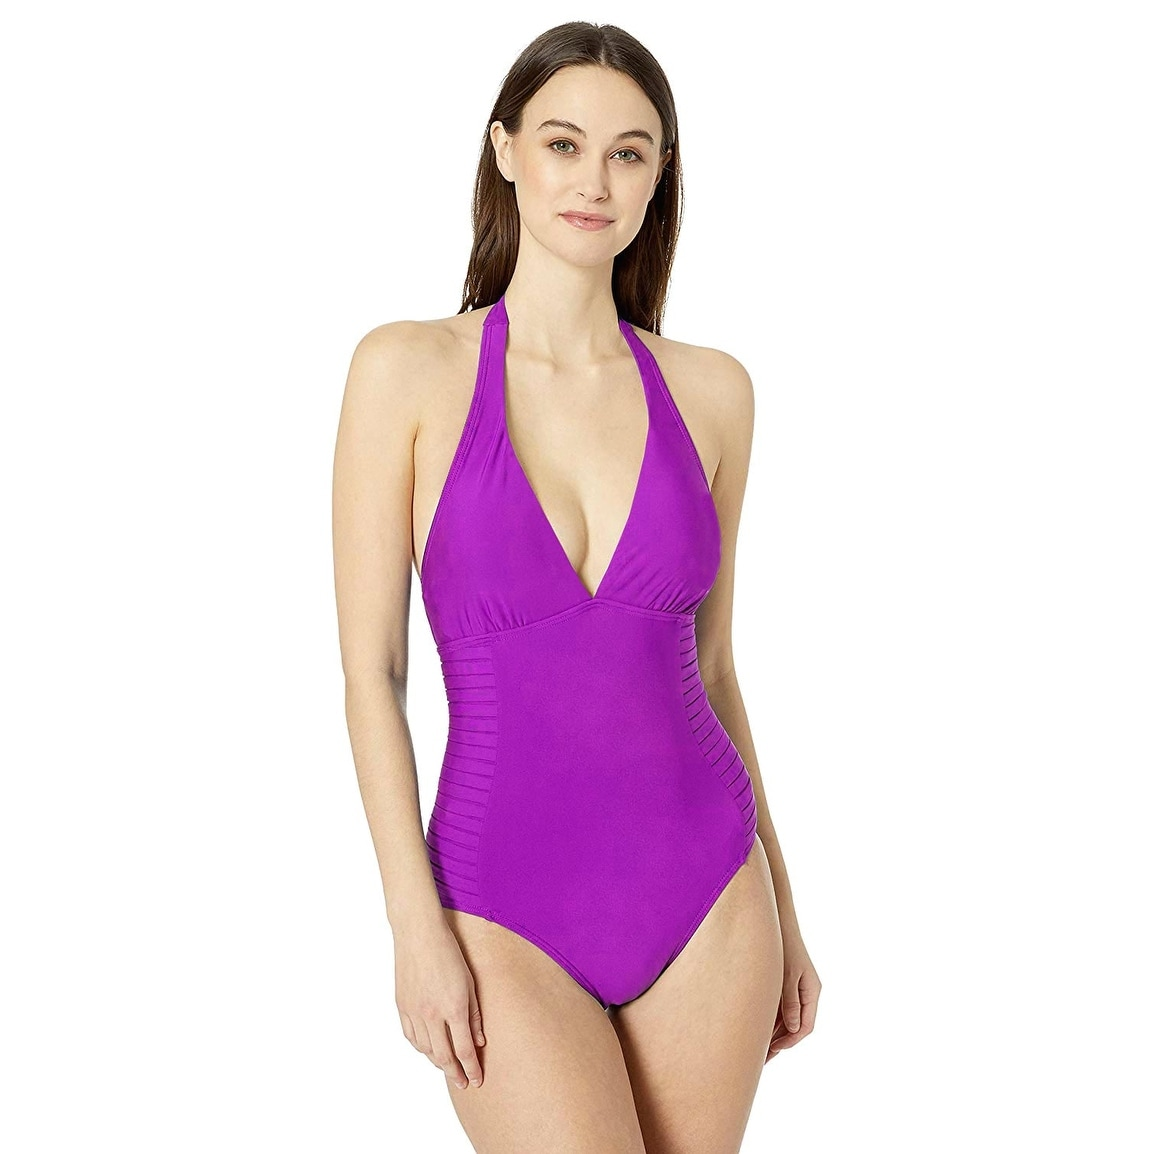 d99d6af5af Calvin Klein Swimwear | Find Great Women's Clothing Deals Shopping at  Overstock